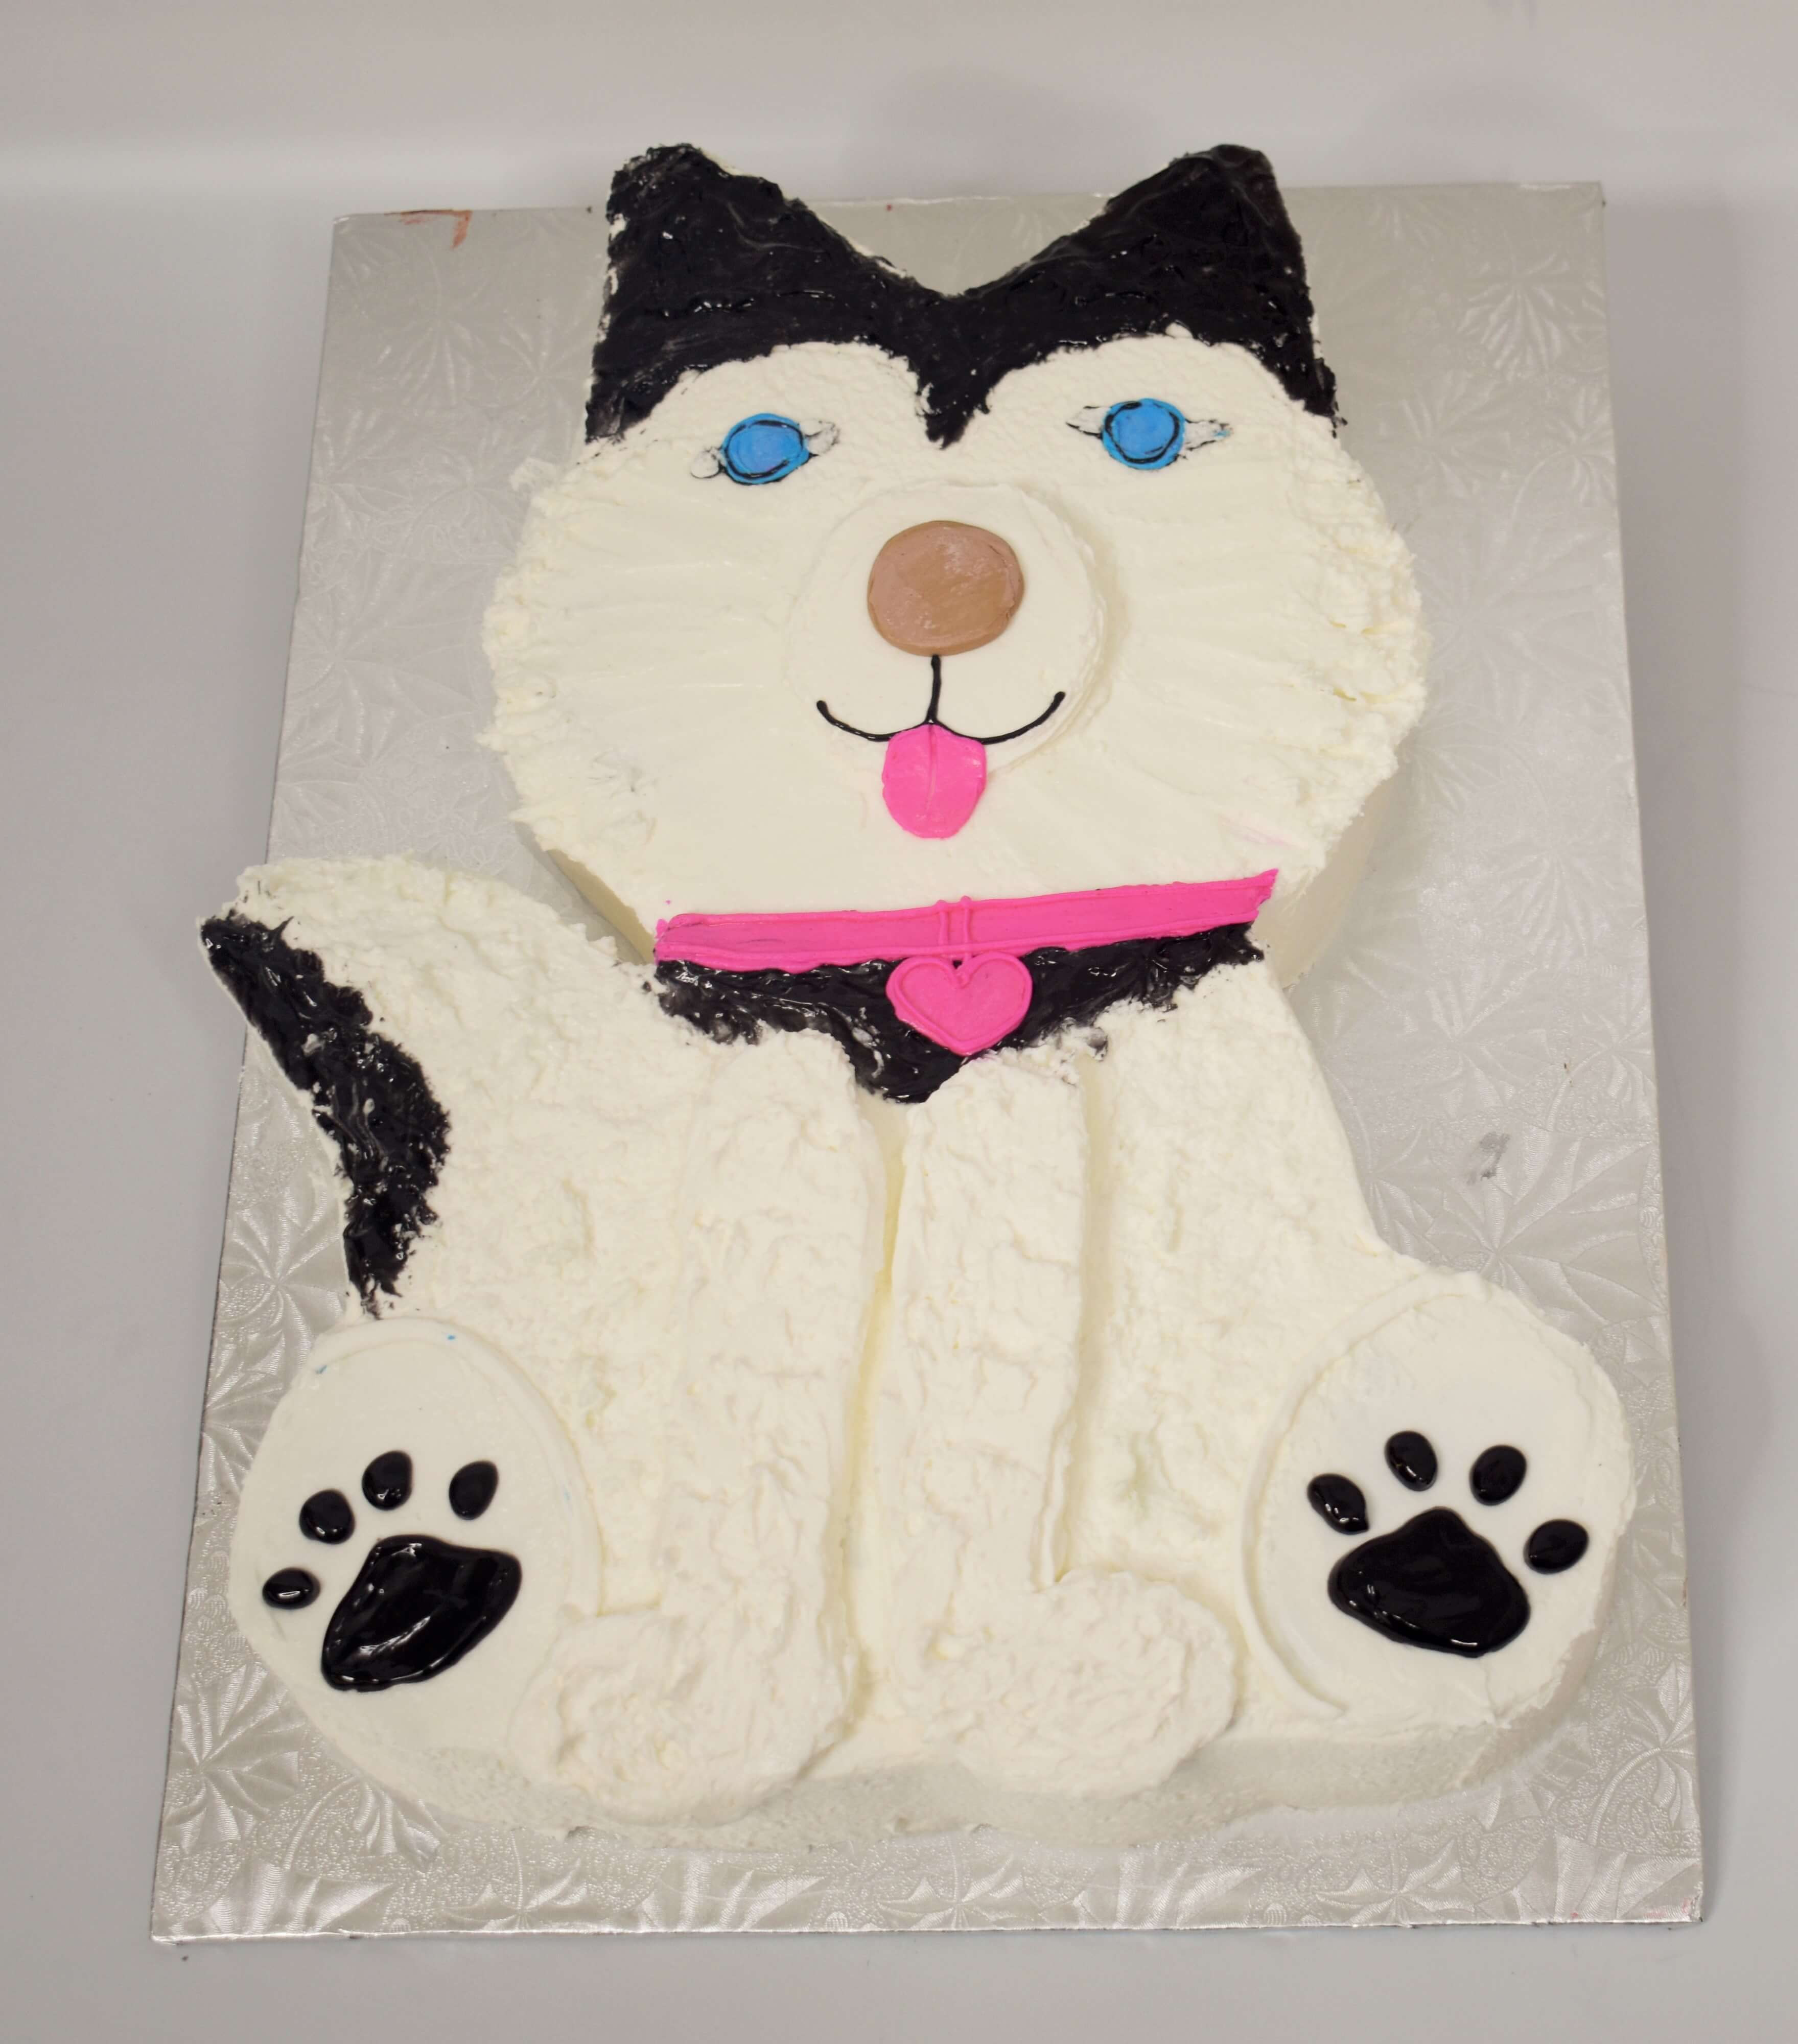 MaArthur's Bakery Custom Cake with Cutout Husky Dog,  White and Black